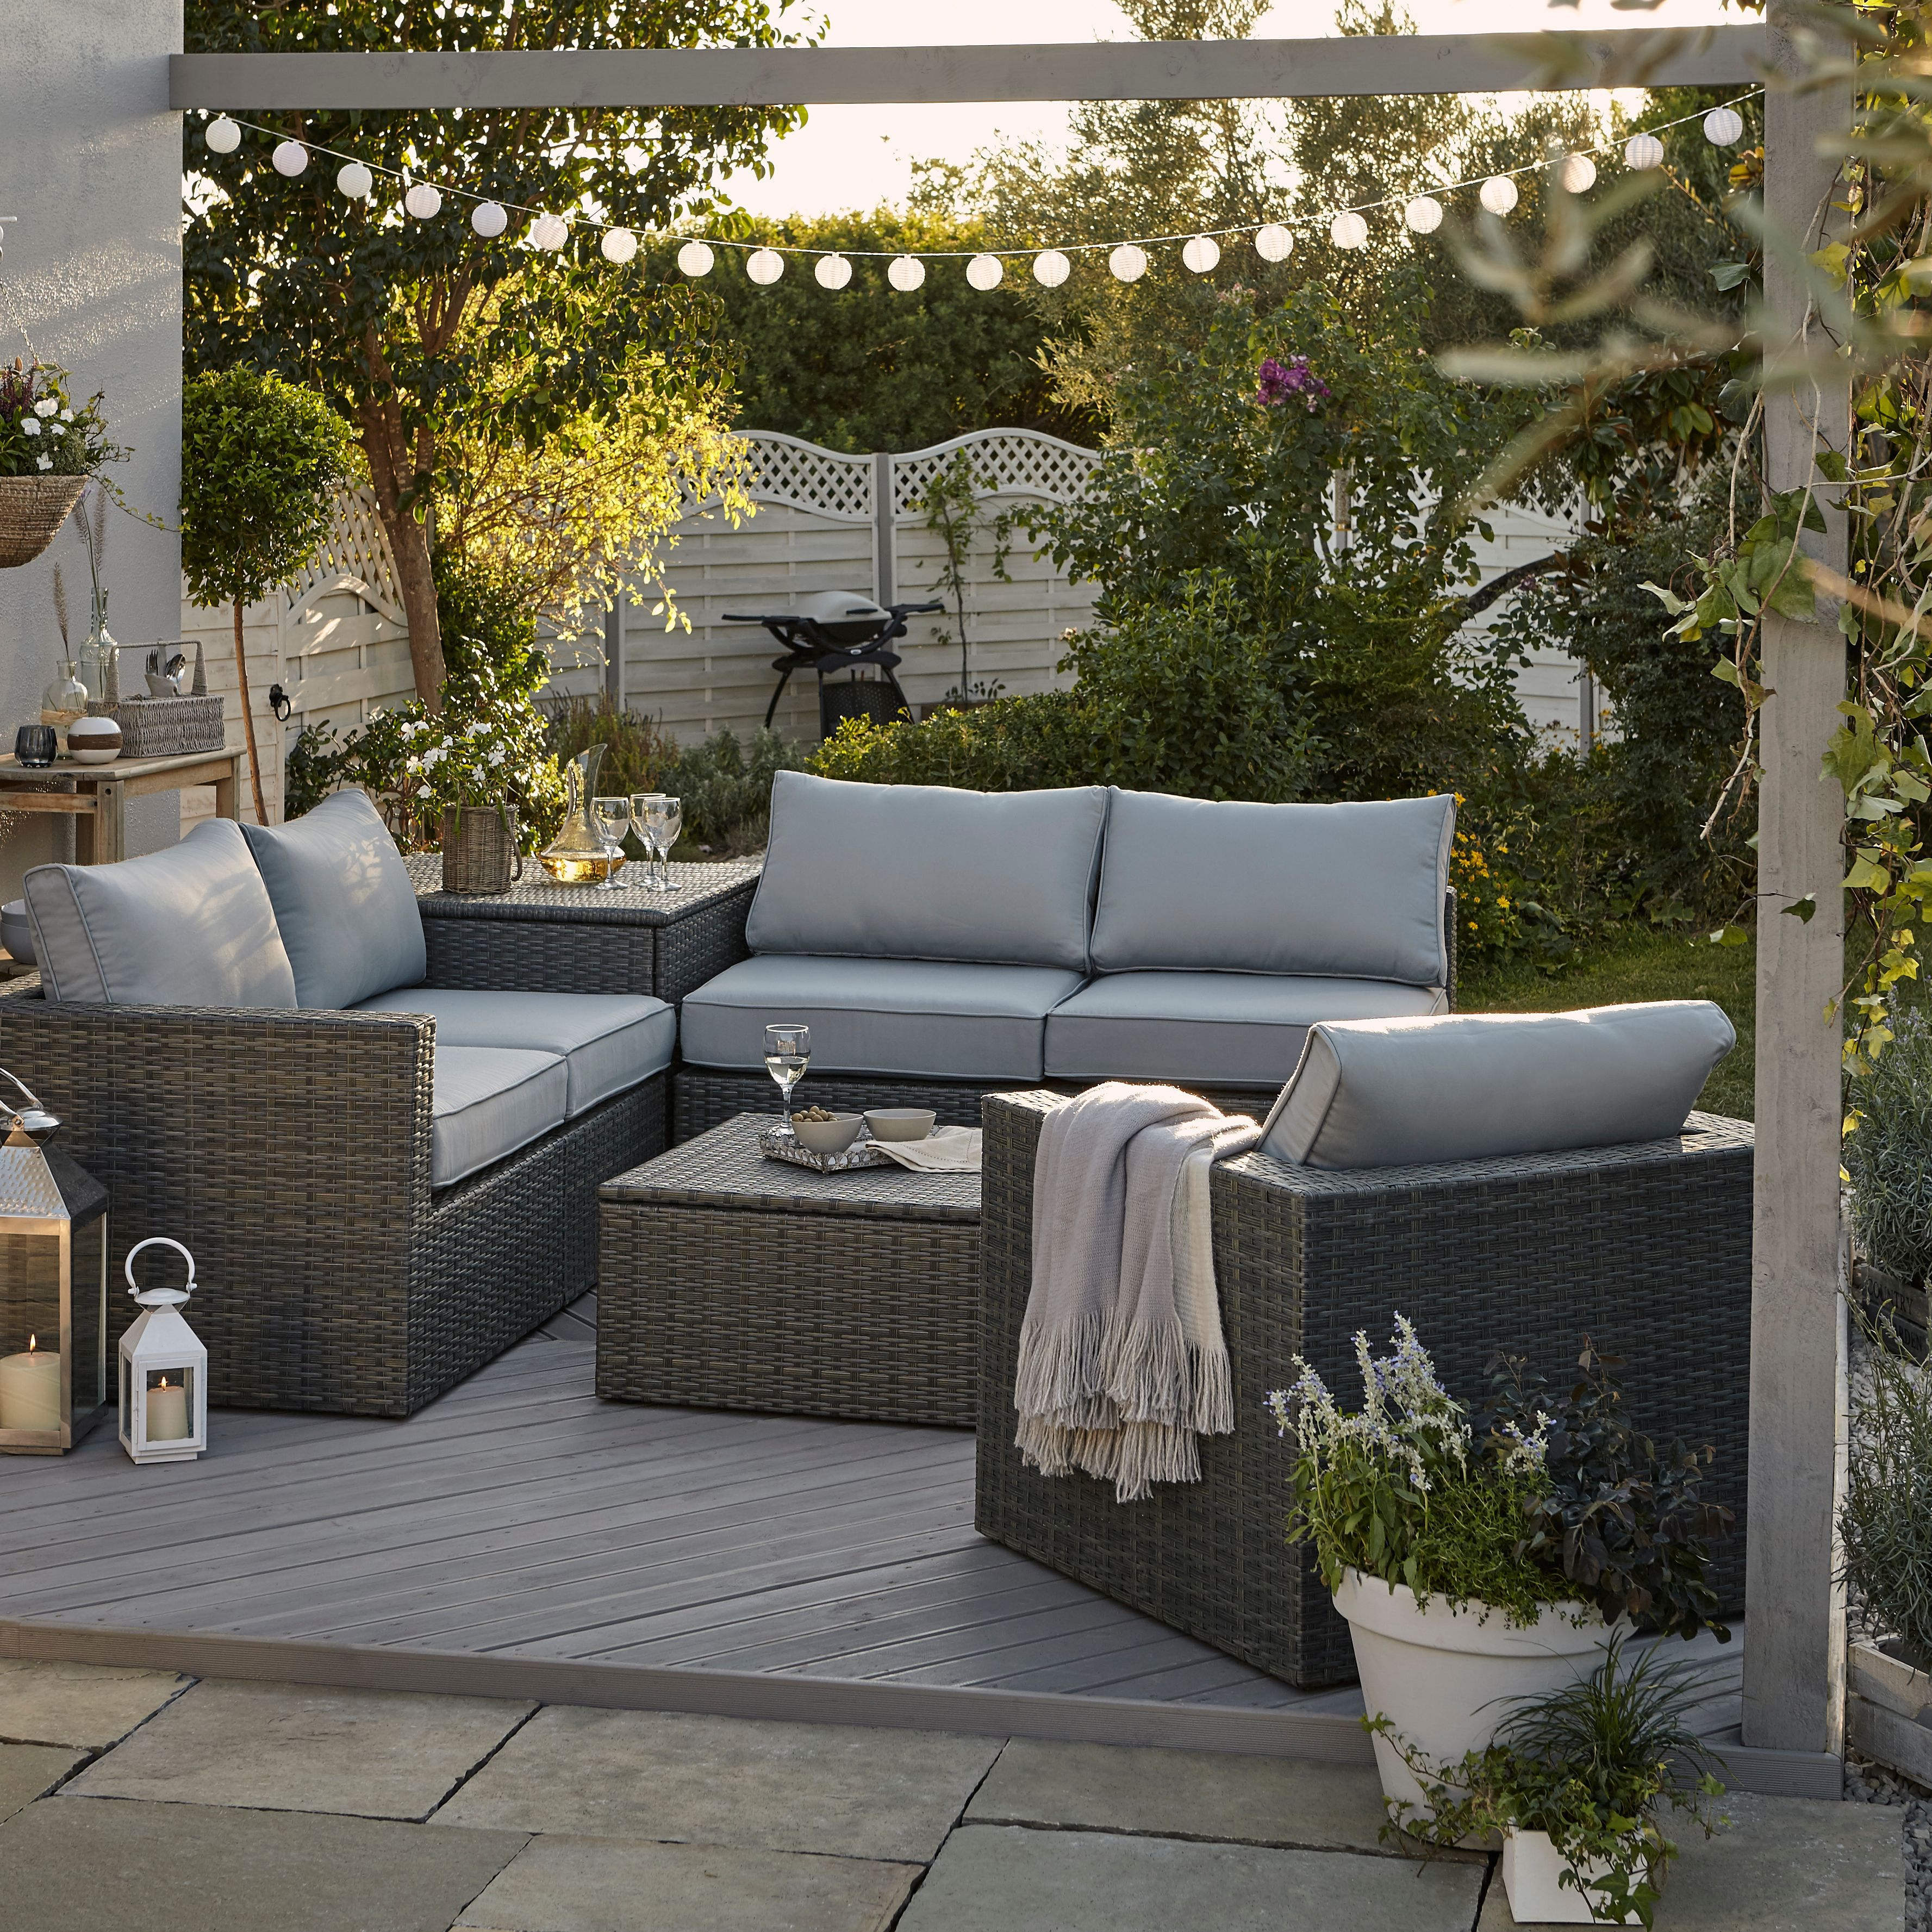 Wonderful How Will The Garden Furniture Be Used? Part 28